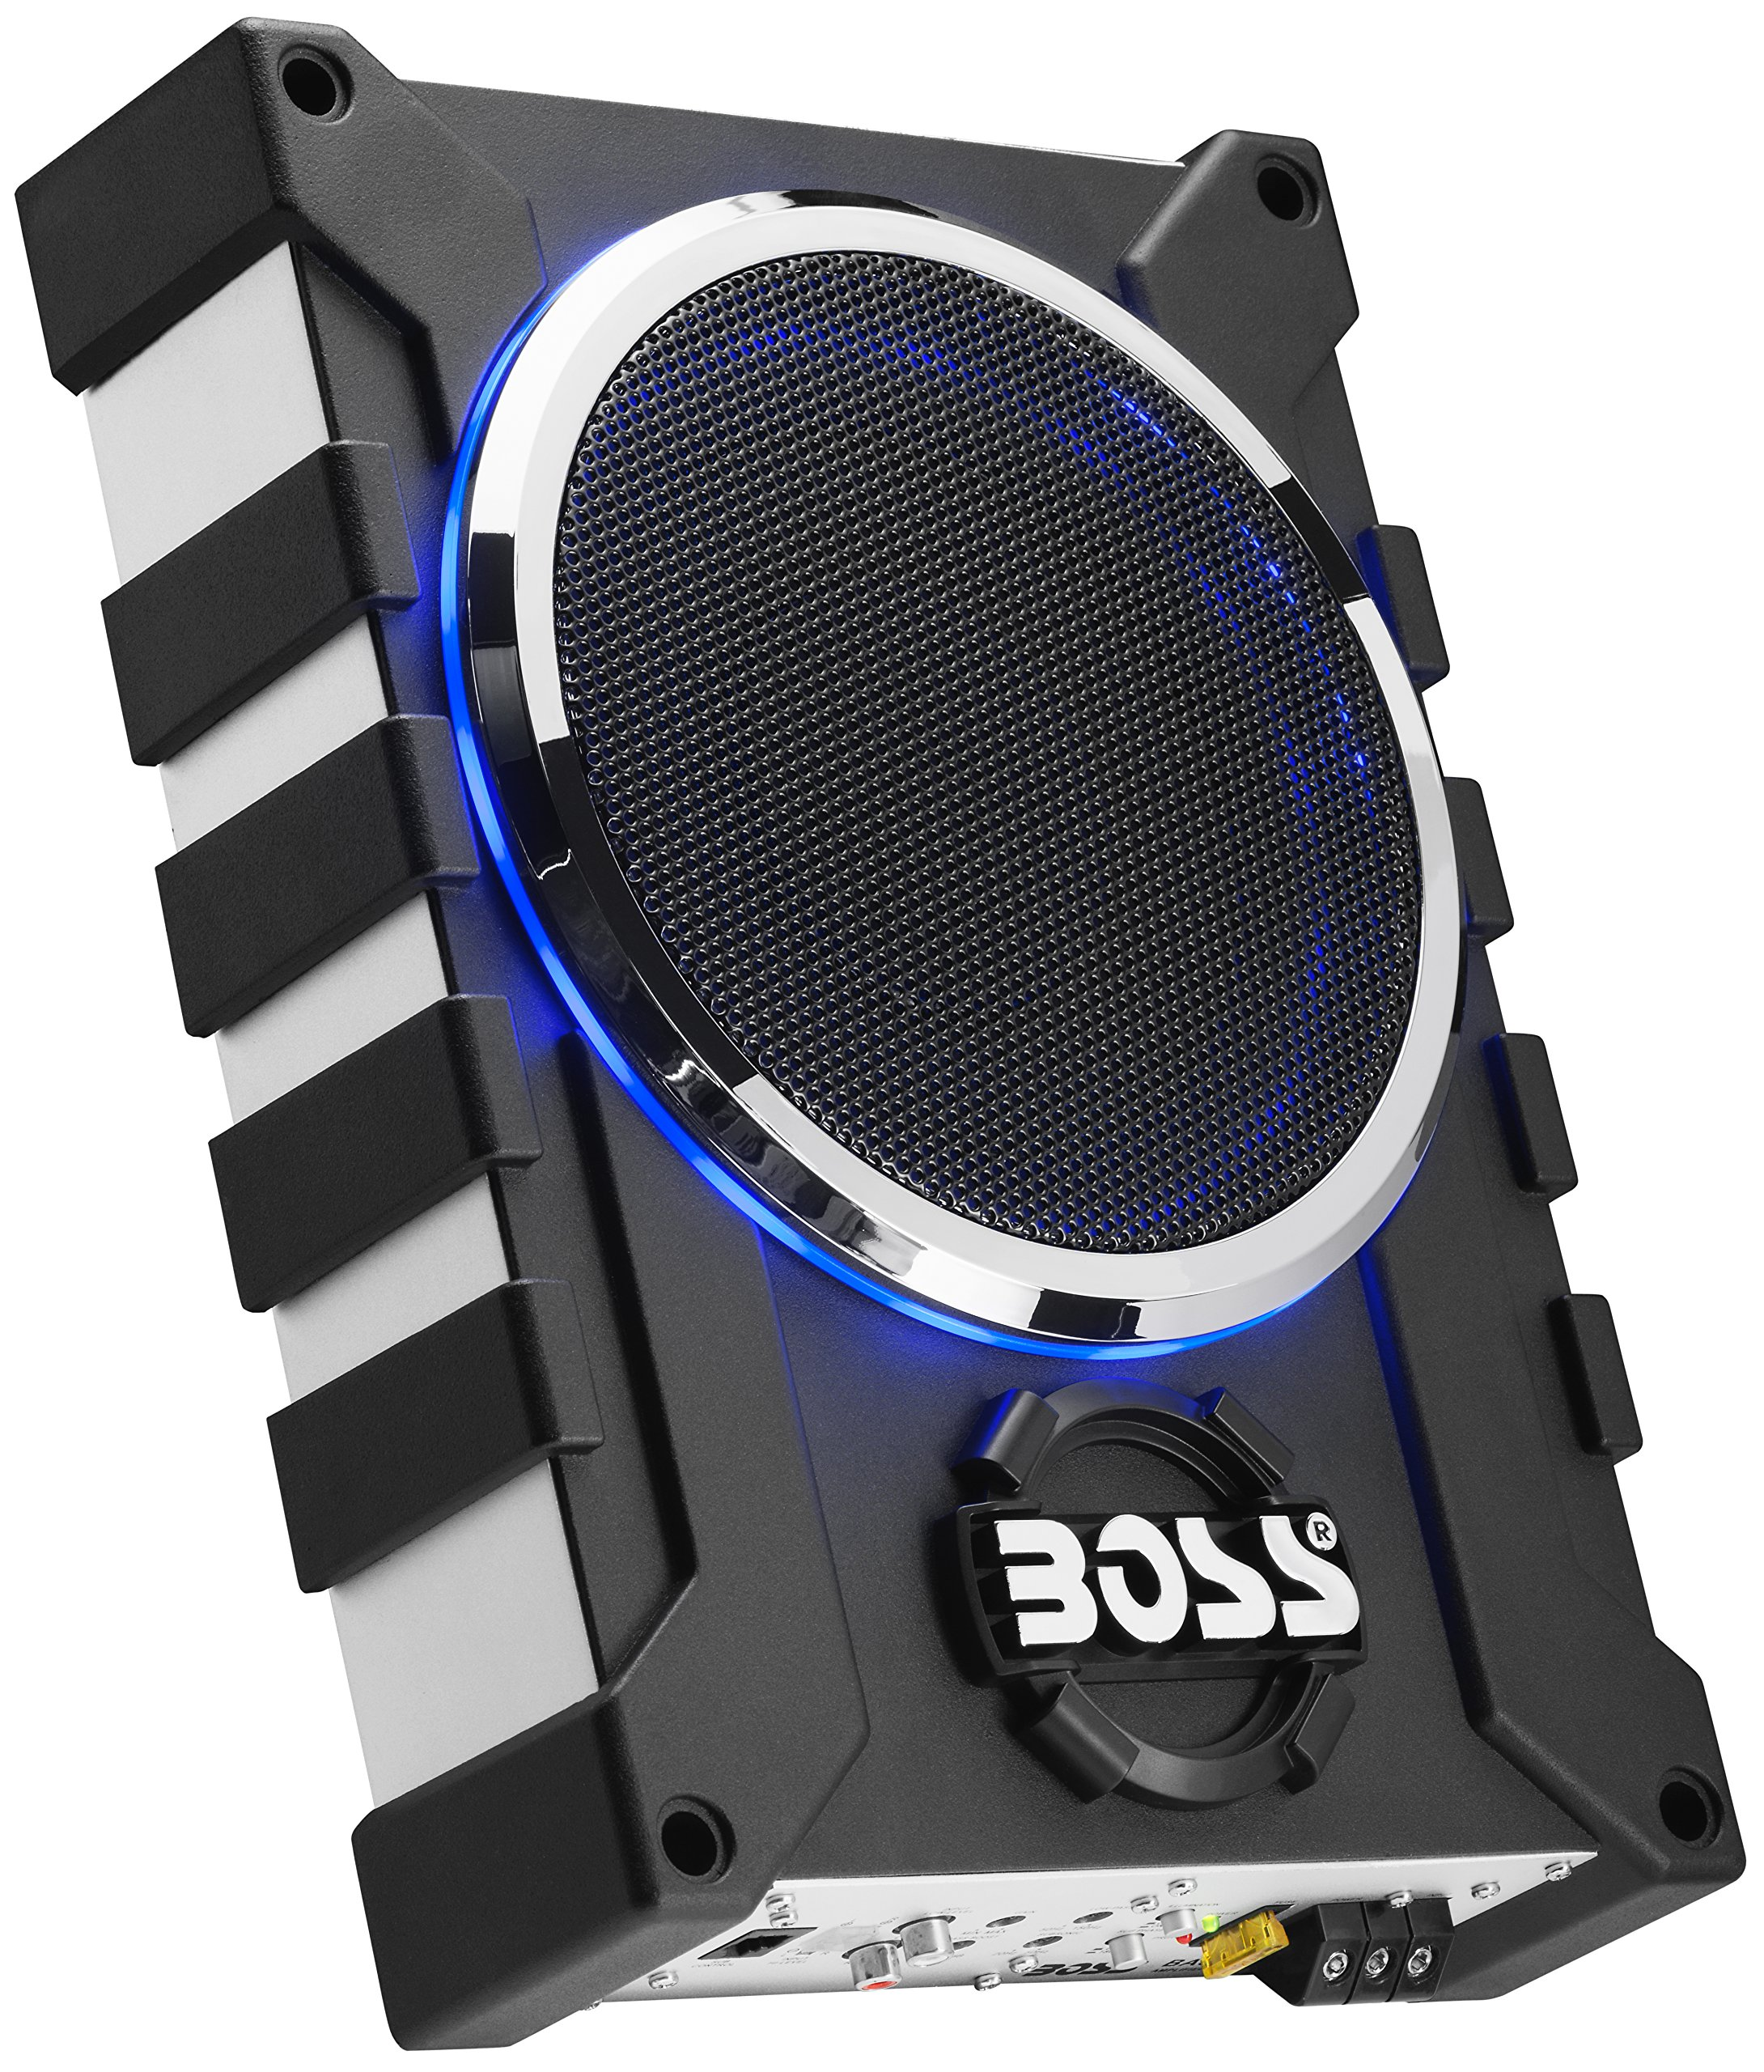 BOSS Audio BASS1000 1000 Watt Low Profile Amplified 8 Inch Subwoofer with Remote Subwoofer Control by BOSS Audio (Image #1)